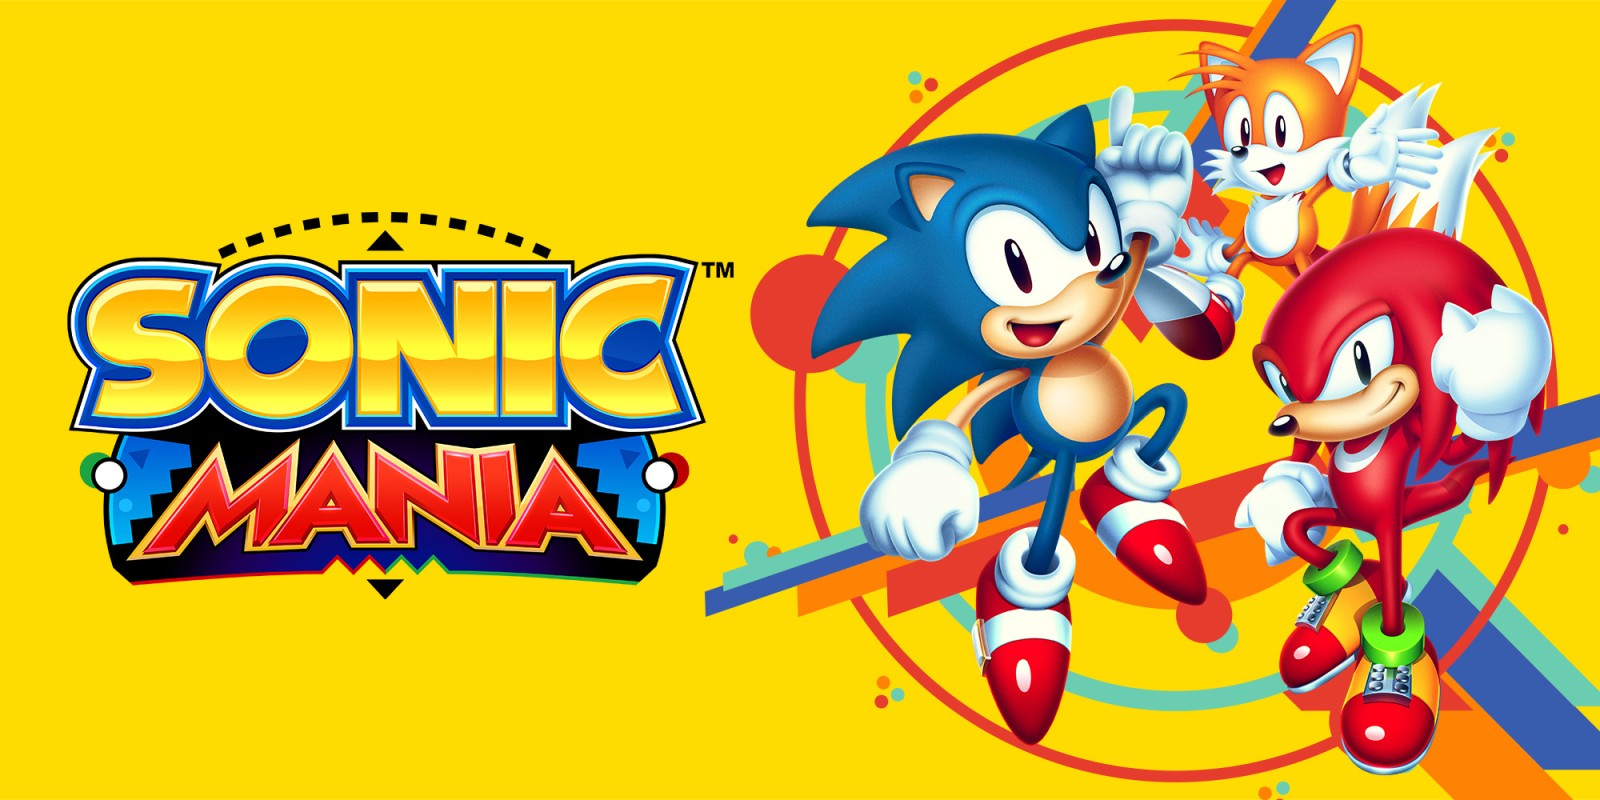 sonic mania nintendo switch download software games nintendo